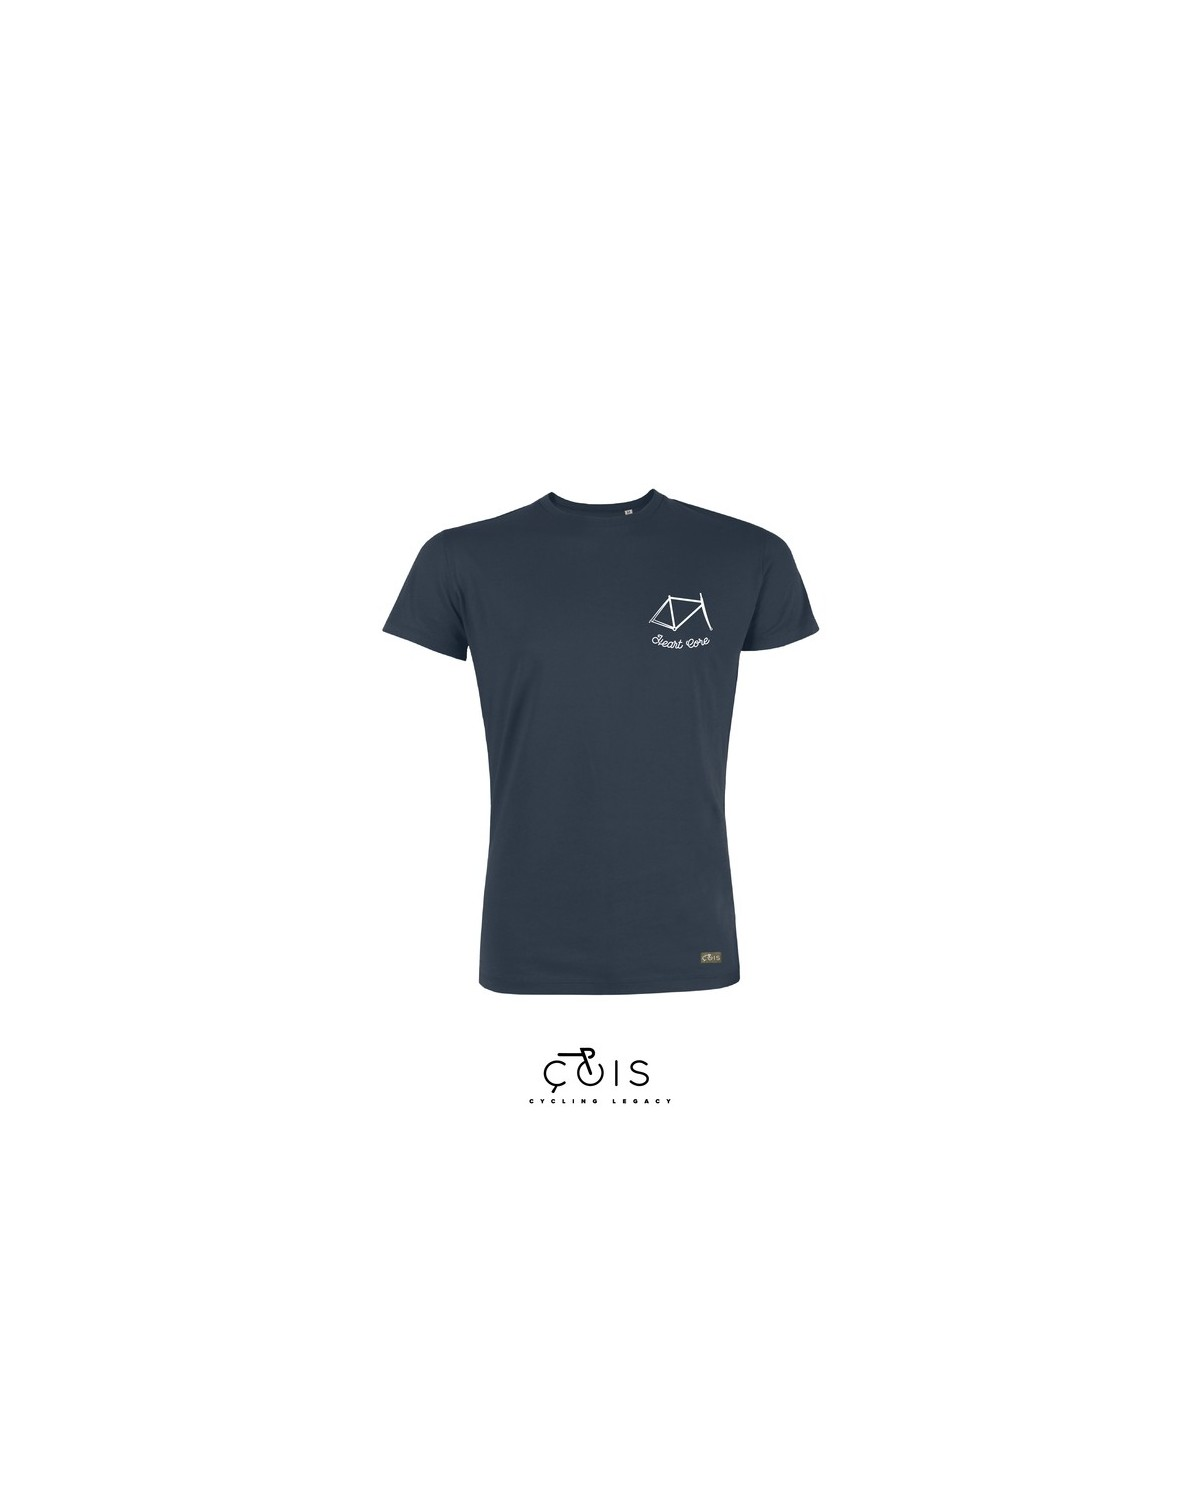 T-Shirt Heart Core Cois Cycling